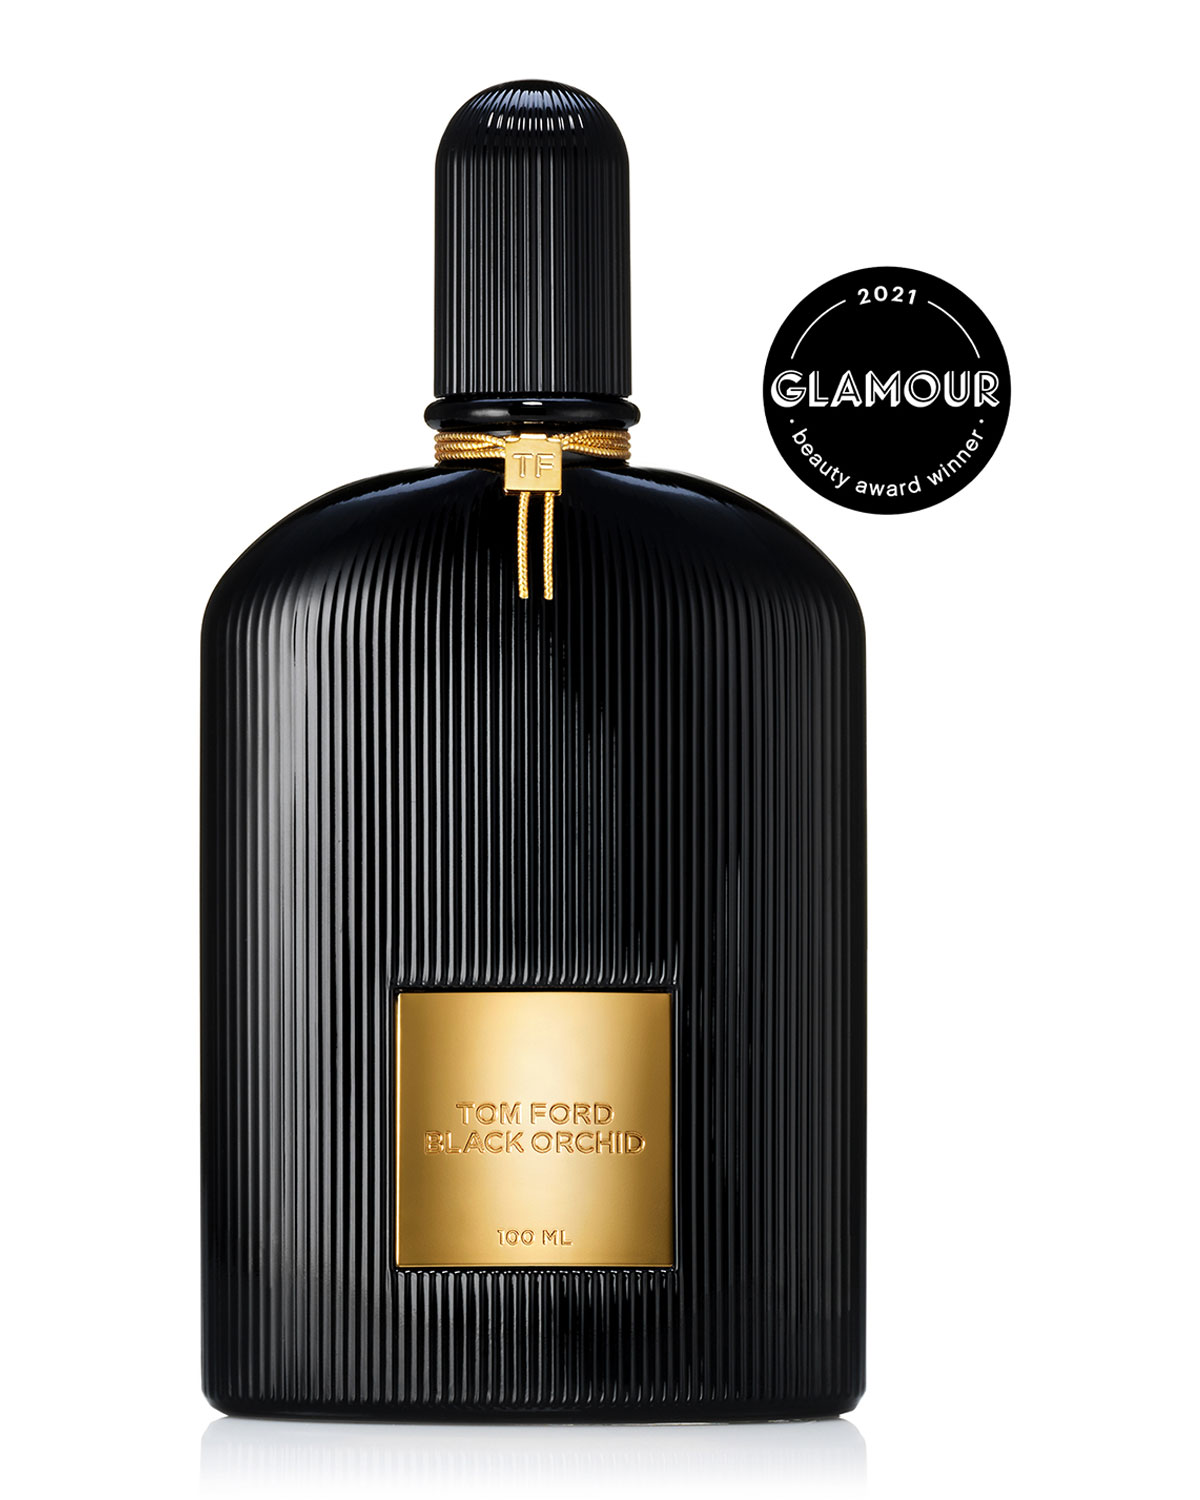 TOM FORD 3.4 oz. Black Orchid Eau de Parfum